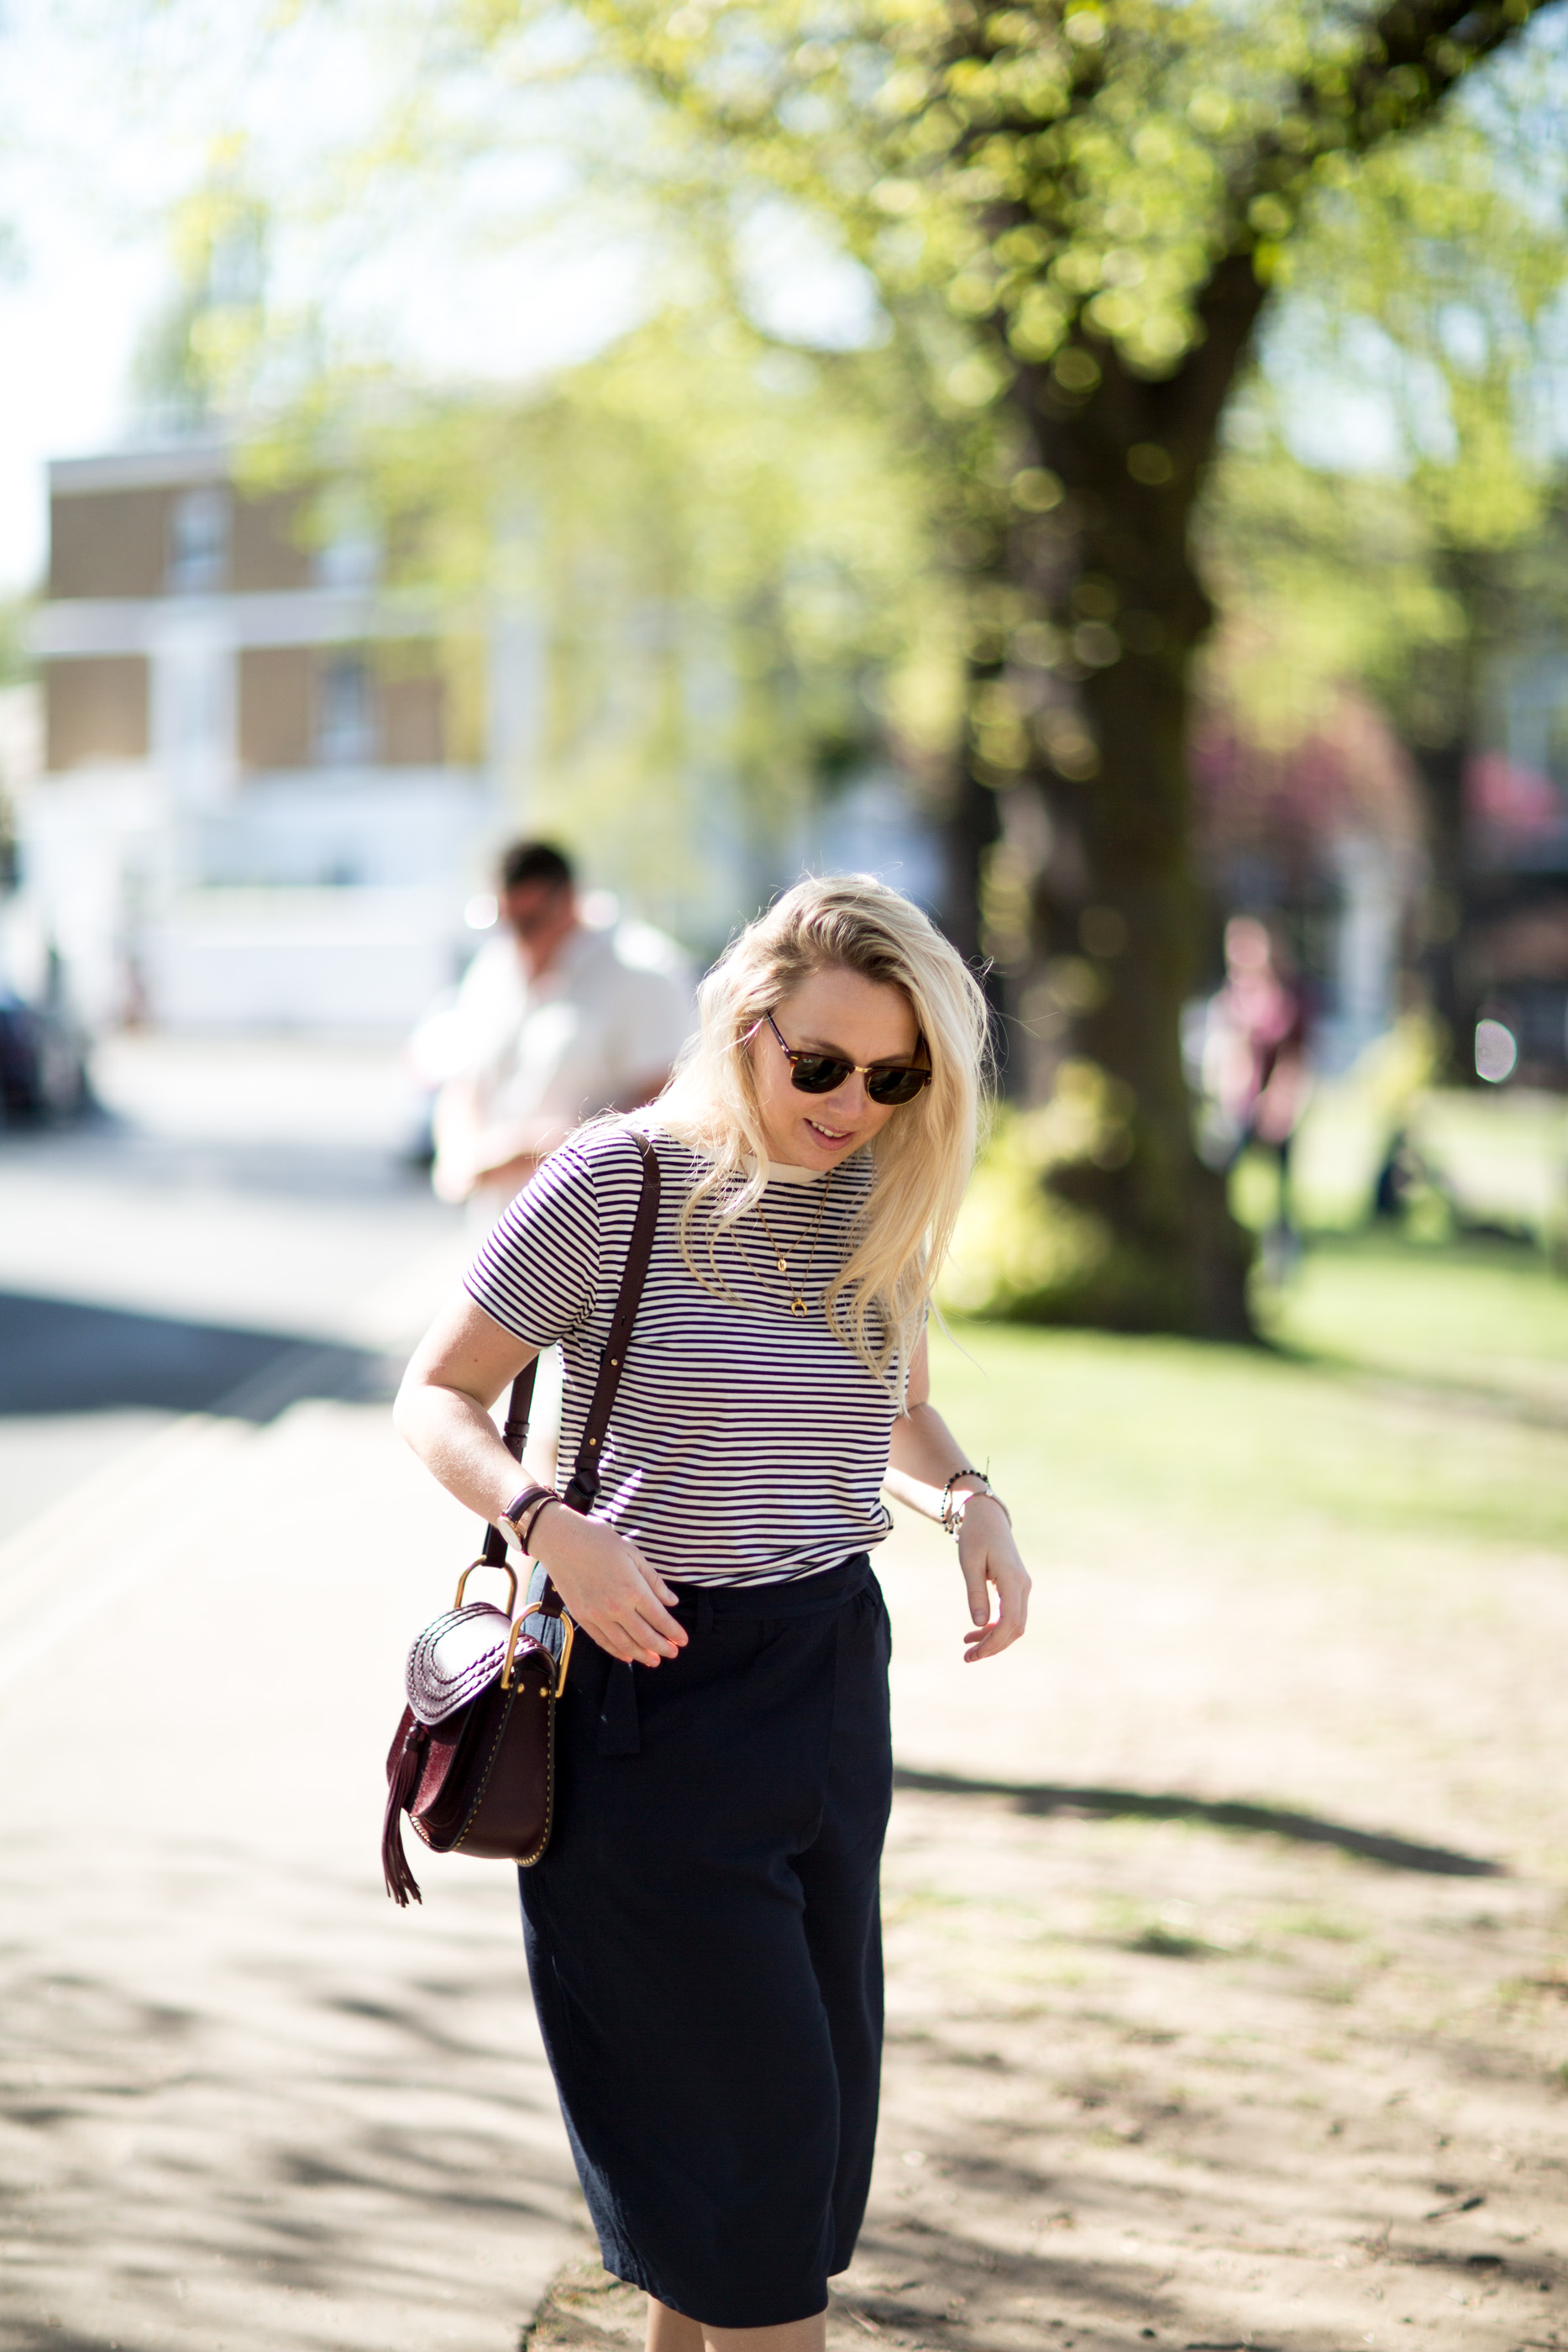 6 style tips for channelling the tom boy look this spring | fashion blogger | spring style | mediamarmalade